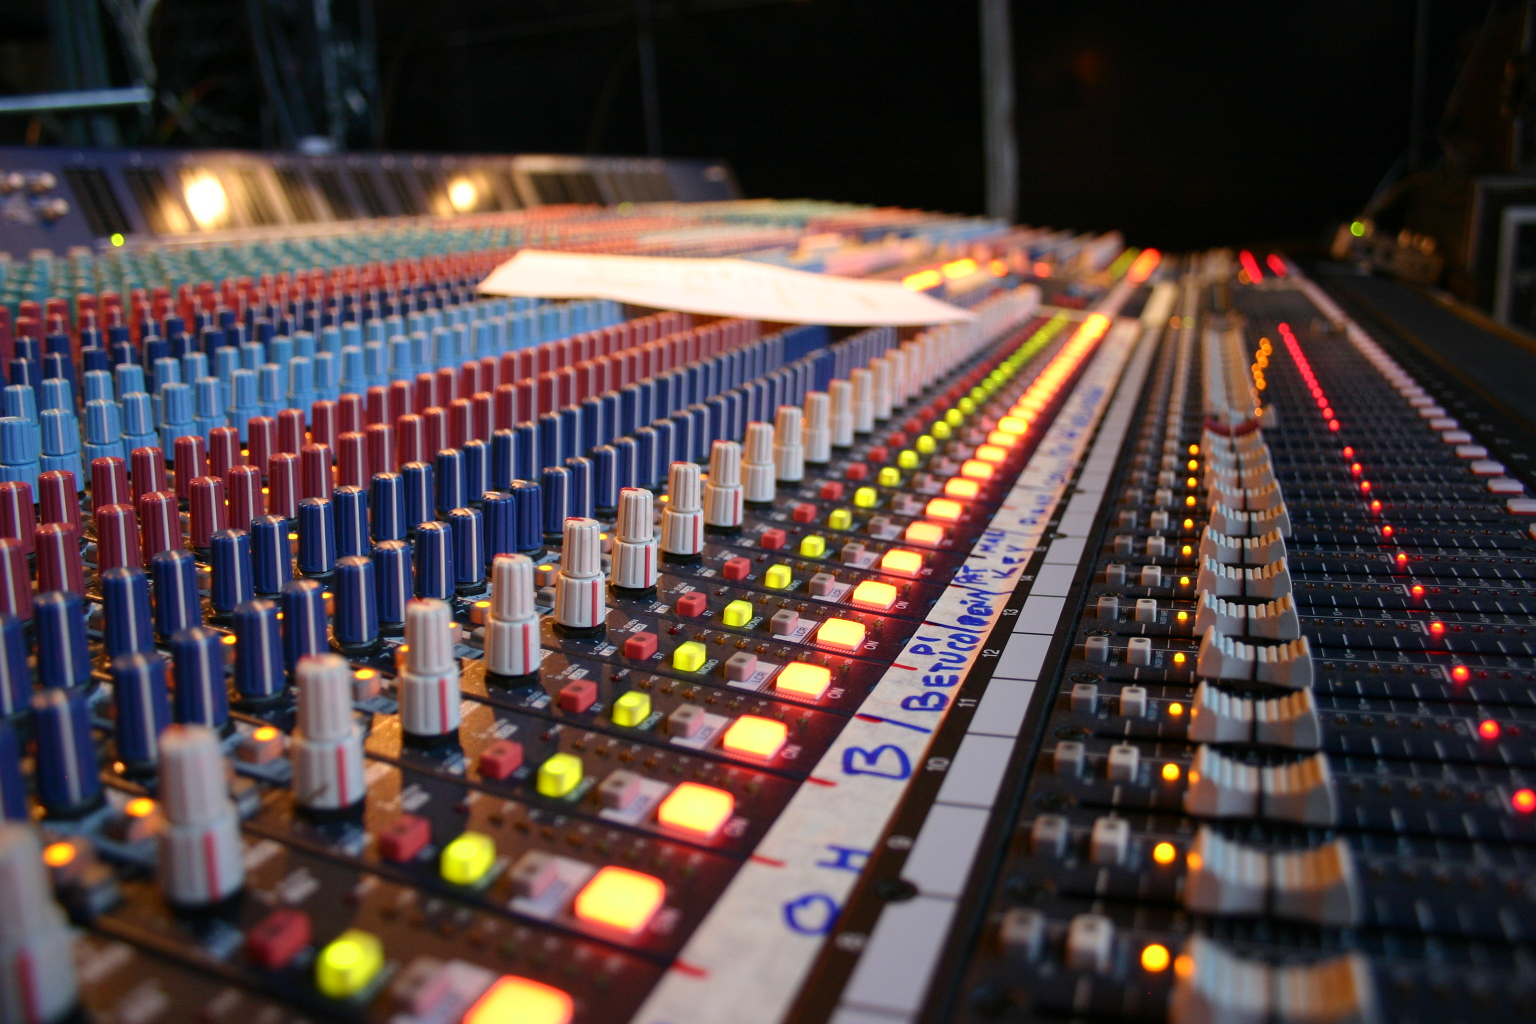 How to prepare a mix for mastering how to make for Yamaha mixing boards